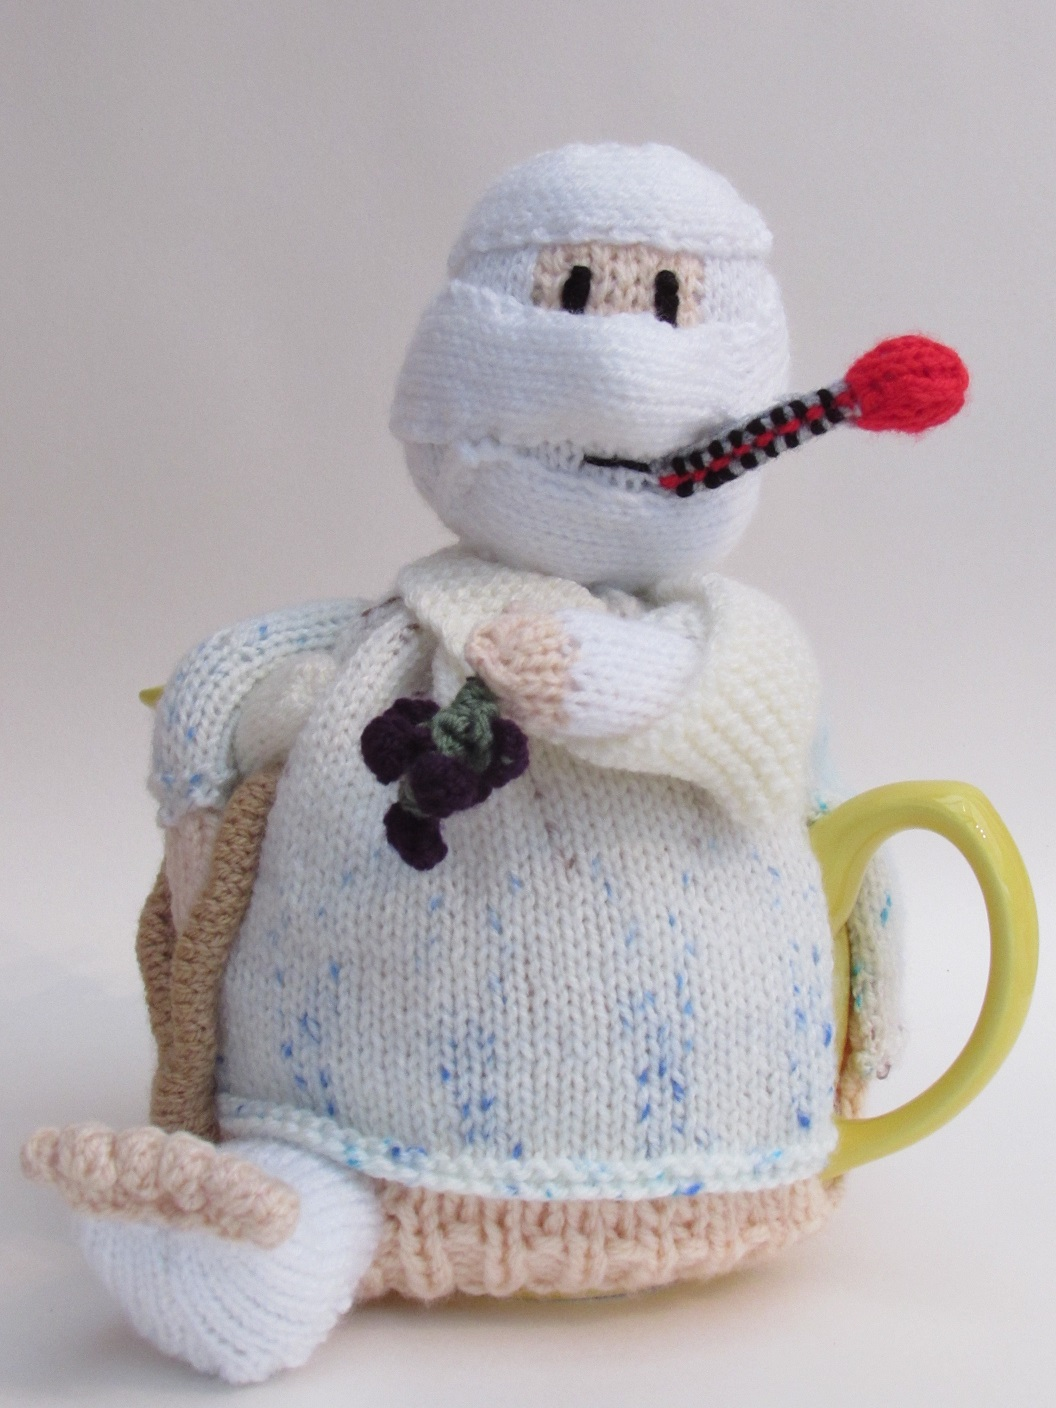 Hospital Patient knitting pattern